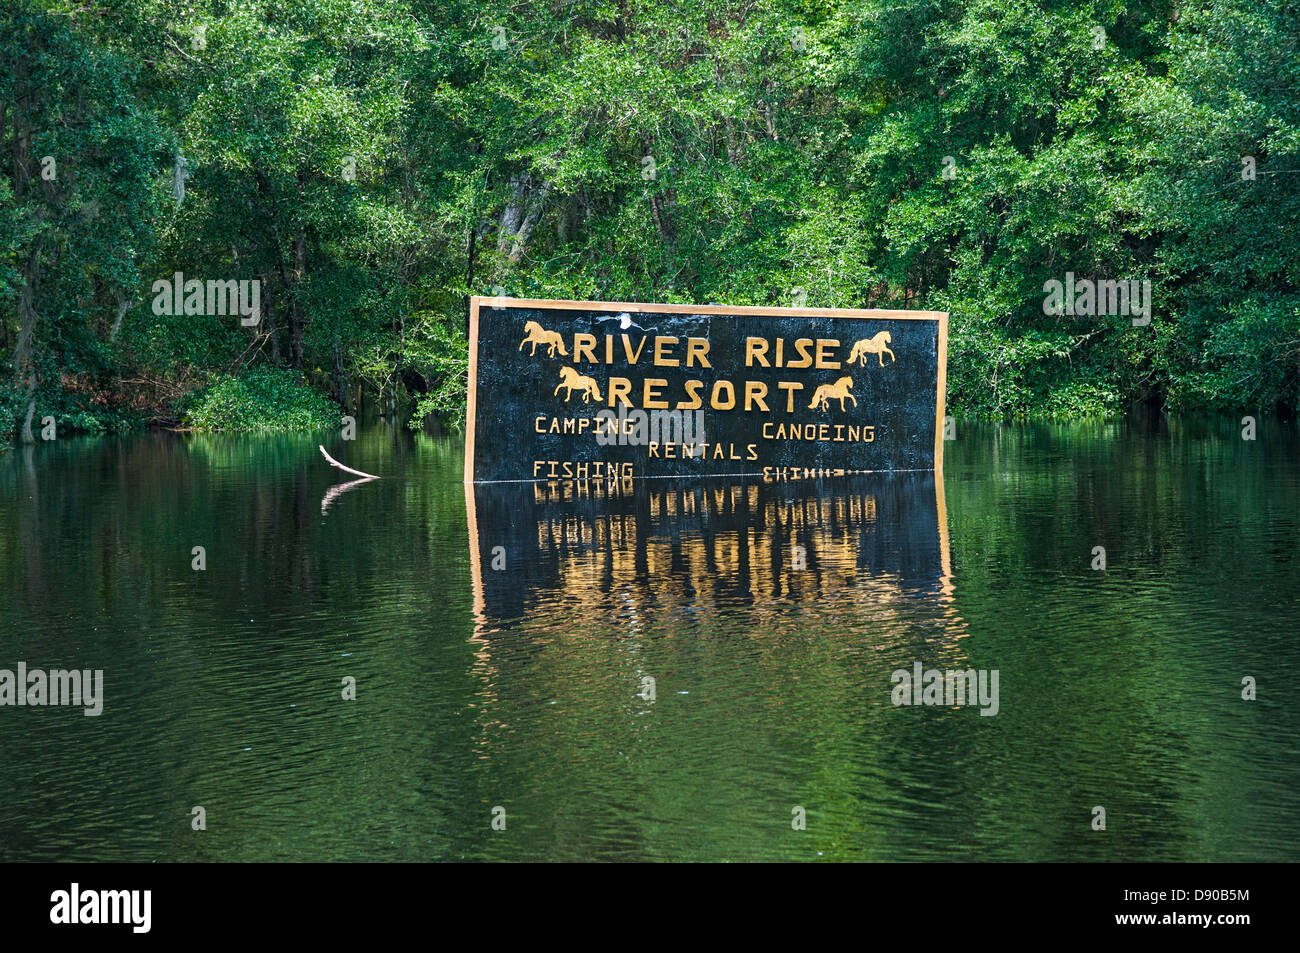 Flooding after Tropical Storm Debby hit North Central Florida 6-12. Stock Photo